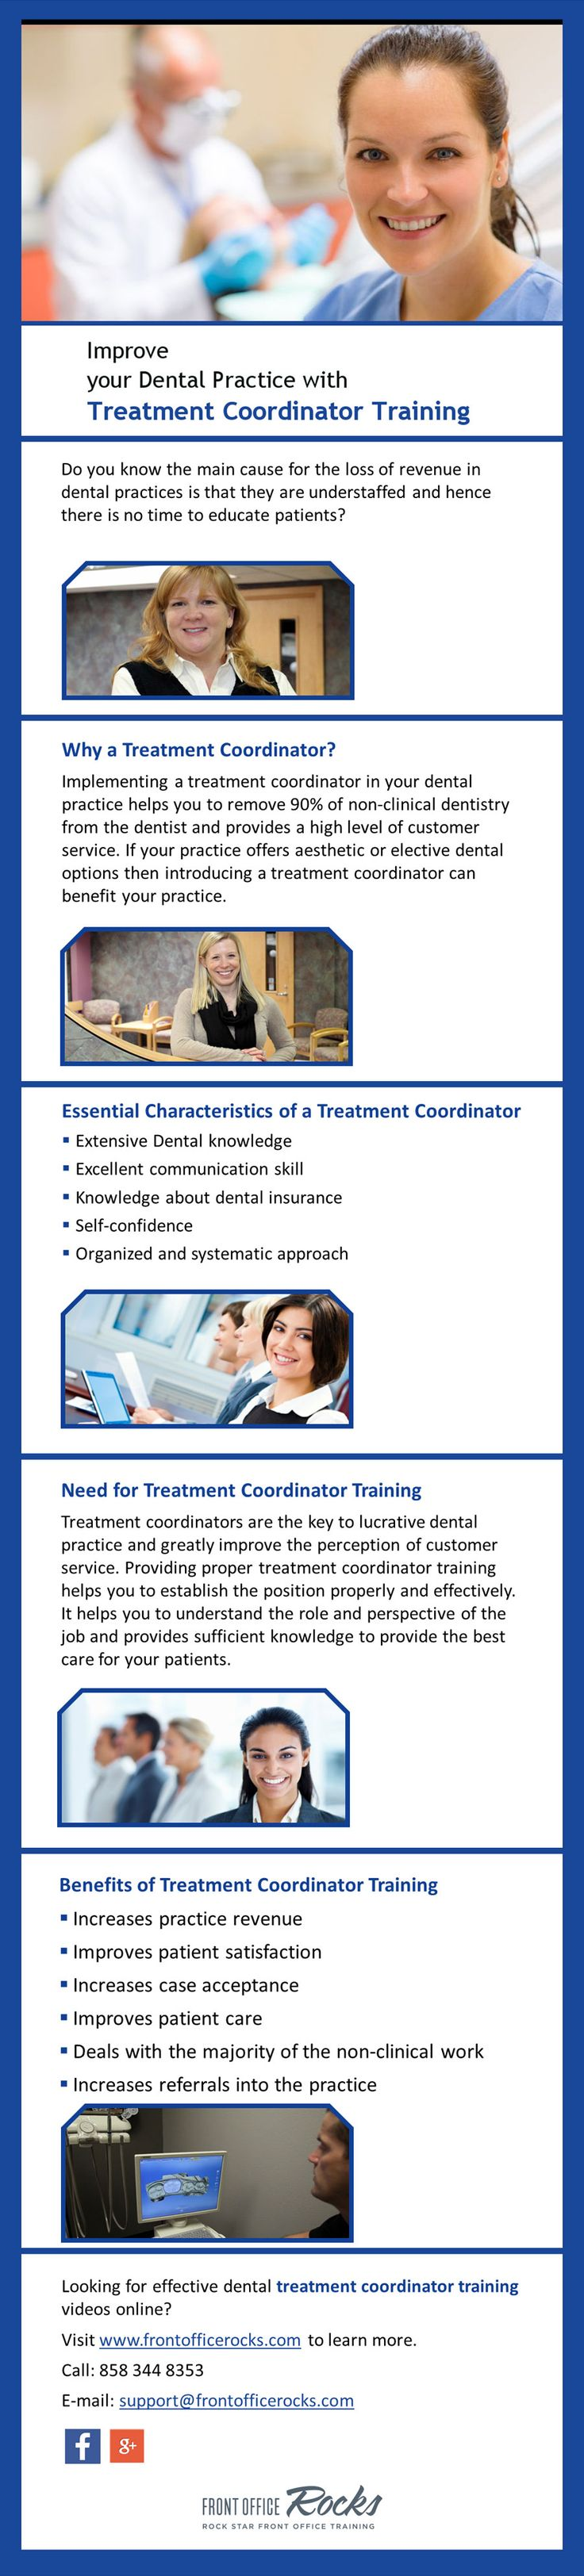 Treatment Coordinator Training Videos Online - Front Office Rocks provides treatment coordinator training videos online to make your dental practice more efficient and profitable. Visit http://frontofficerocks.com/ to know more about their service.